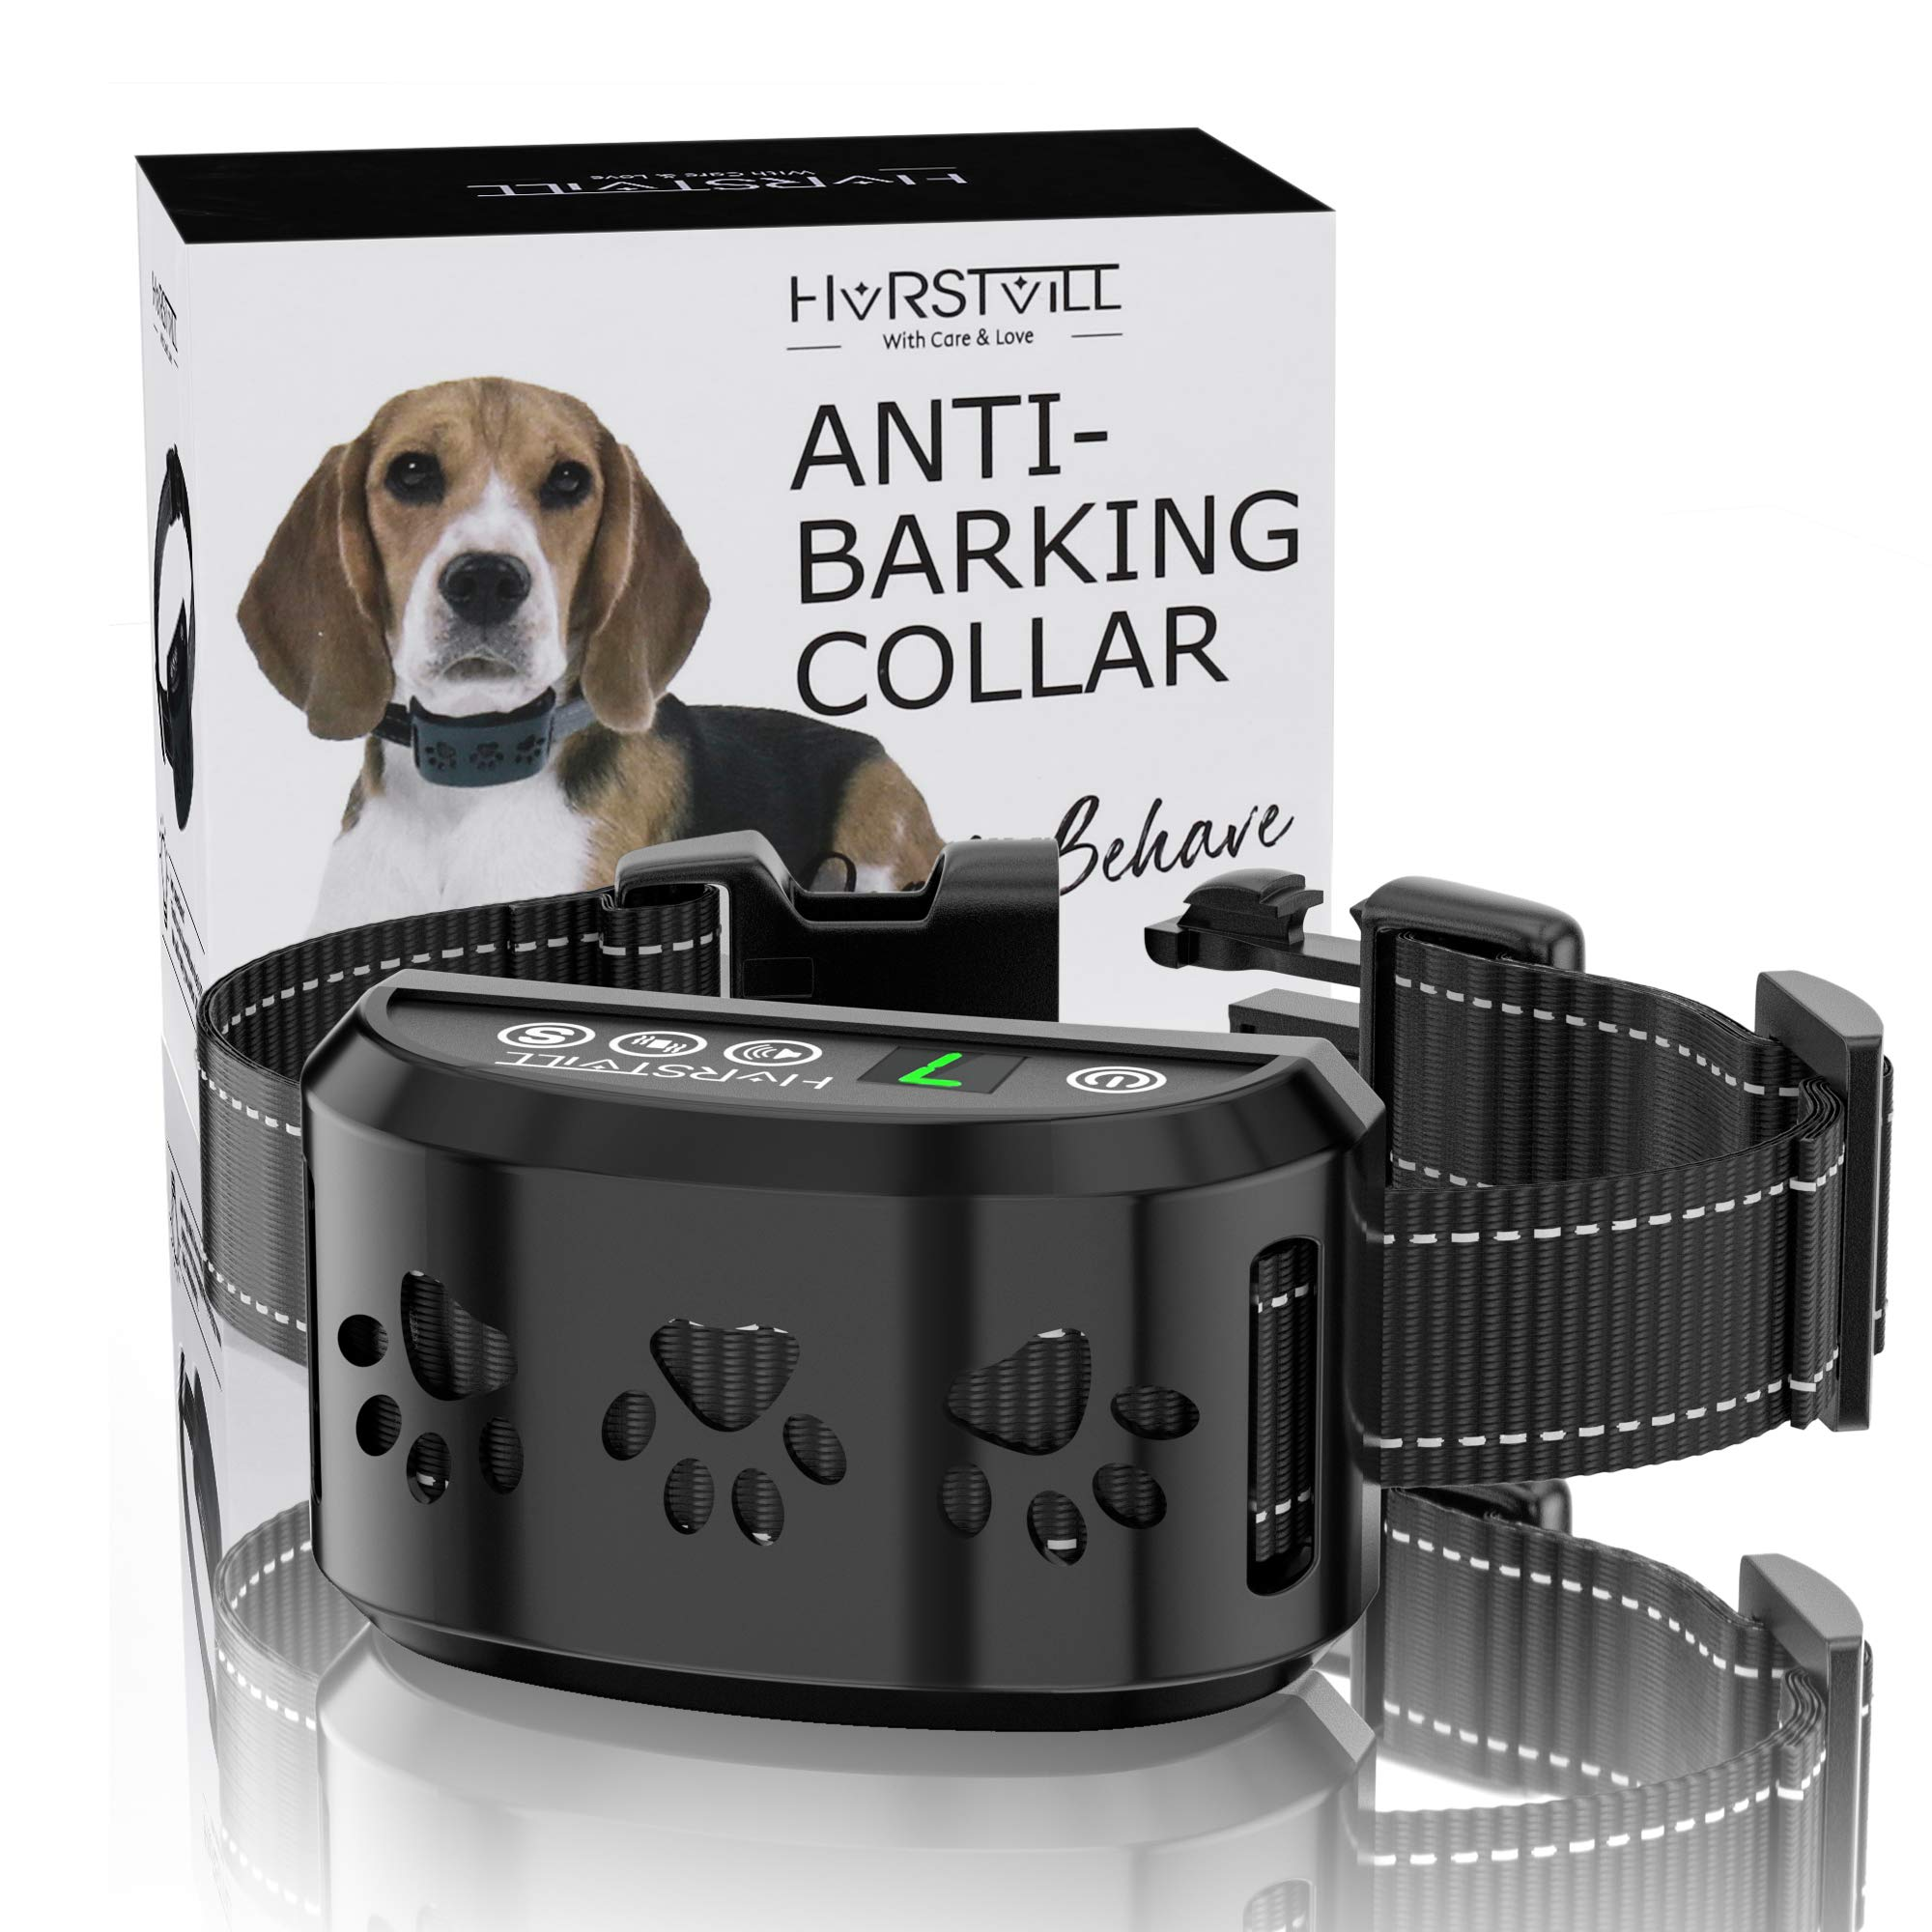 HVRSTVILL Advanced Bark Collar, Anti Bark Collar for Small Medium Large Dogs, Stop Barking Device - NO SHOCK, Safely and Humane with Sound & Vibration, Rechargeable and Adjustable Belt 7-55kg